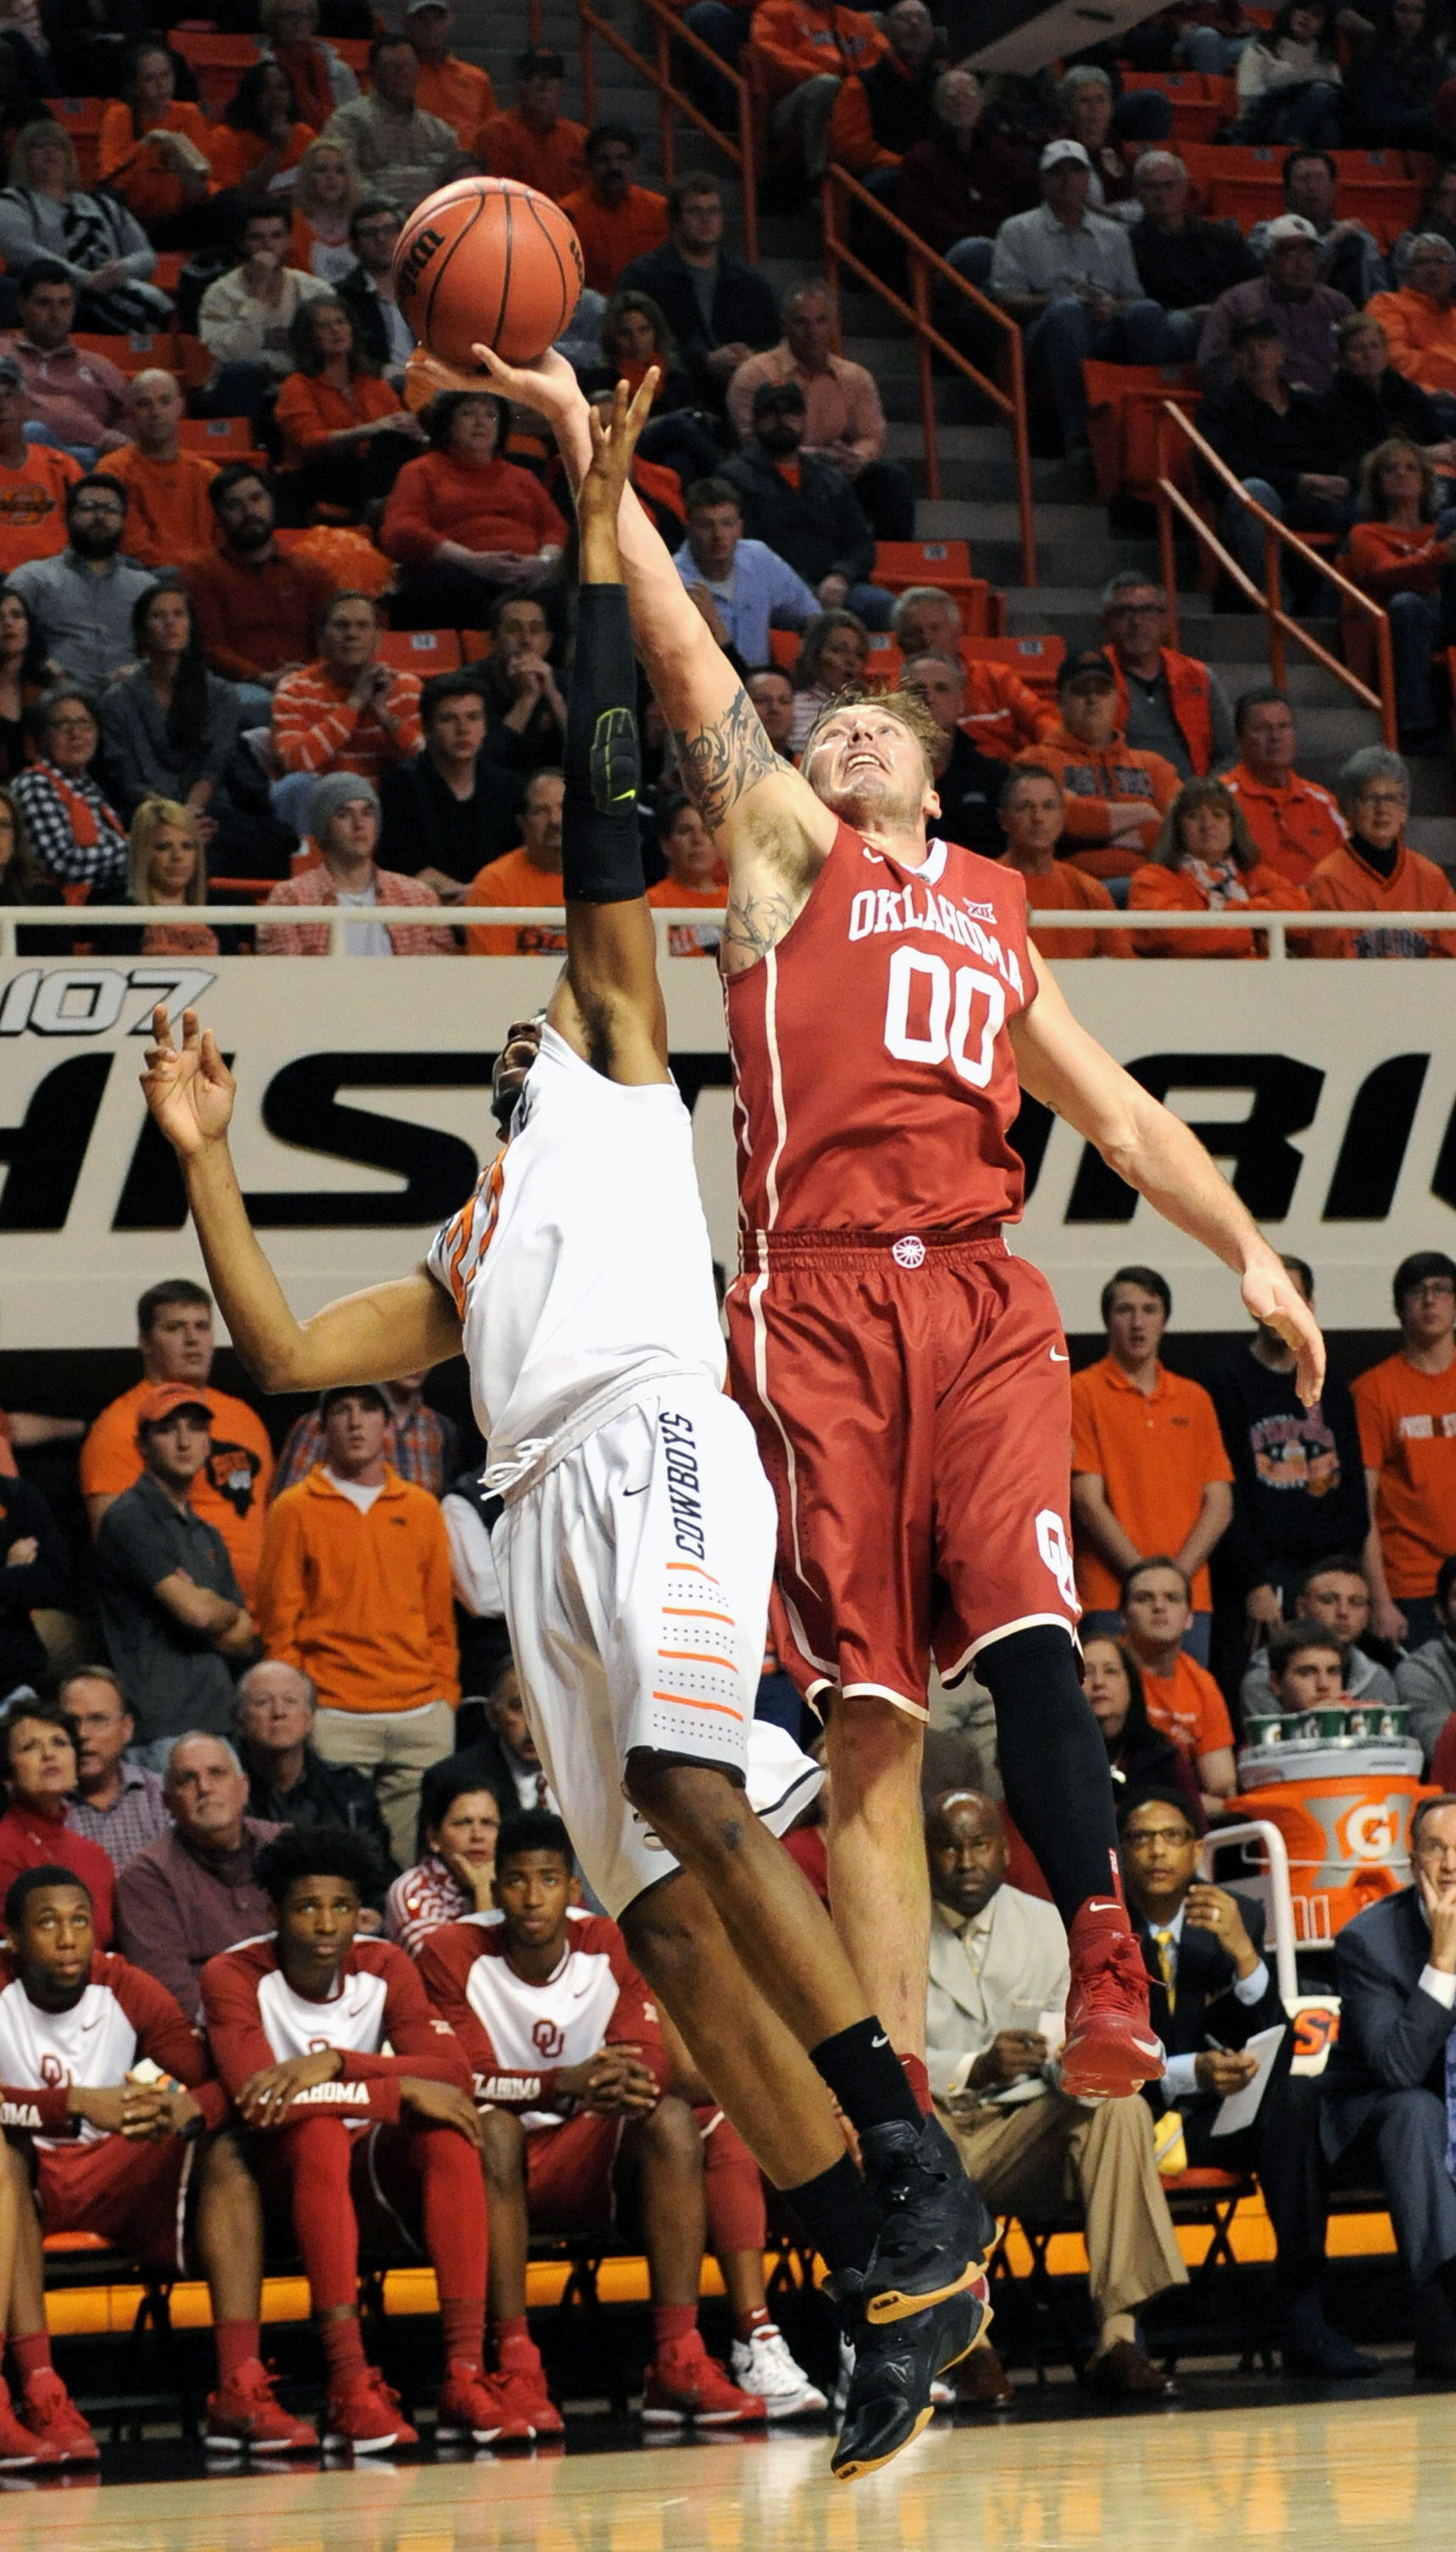 Oklahoma forward Ryan Spangler, right, stretches for a rebound over Oklahoma State forward Leyton Hammonds during the first half of an NCAA college basketball game in Stillwater, Okla., Wednesday, Jan. 13, 2016. (AP Photo/Brody Schmidt)